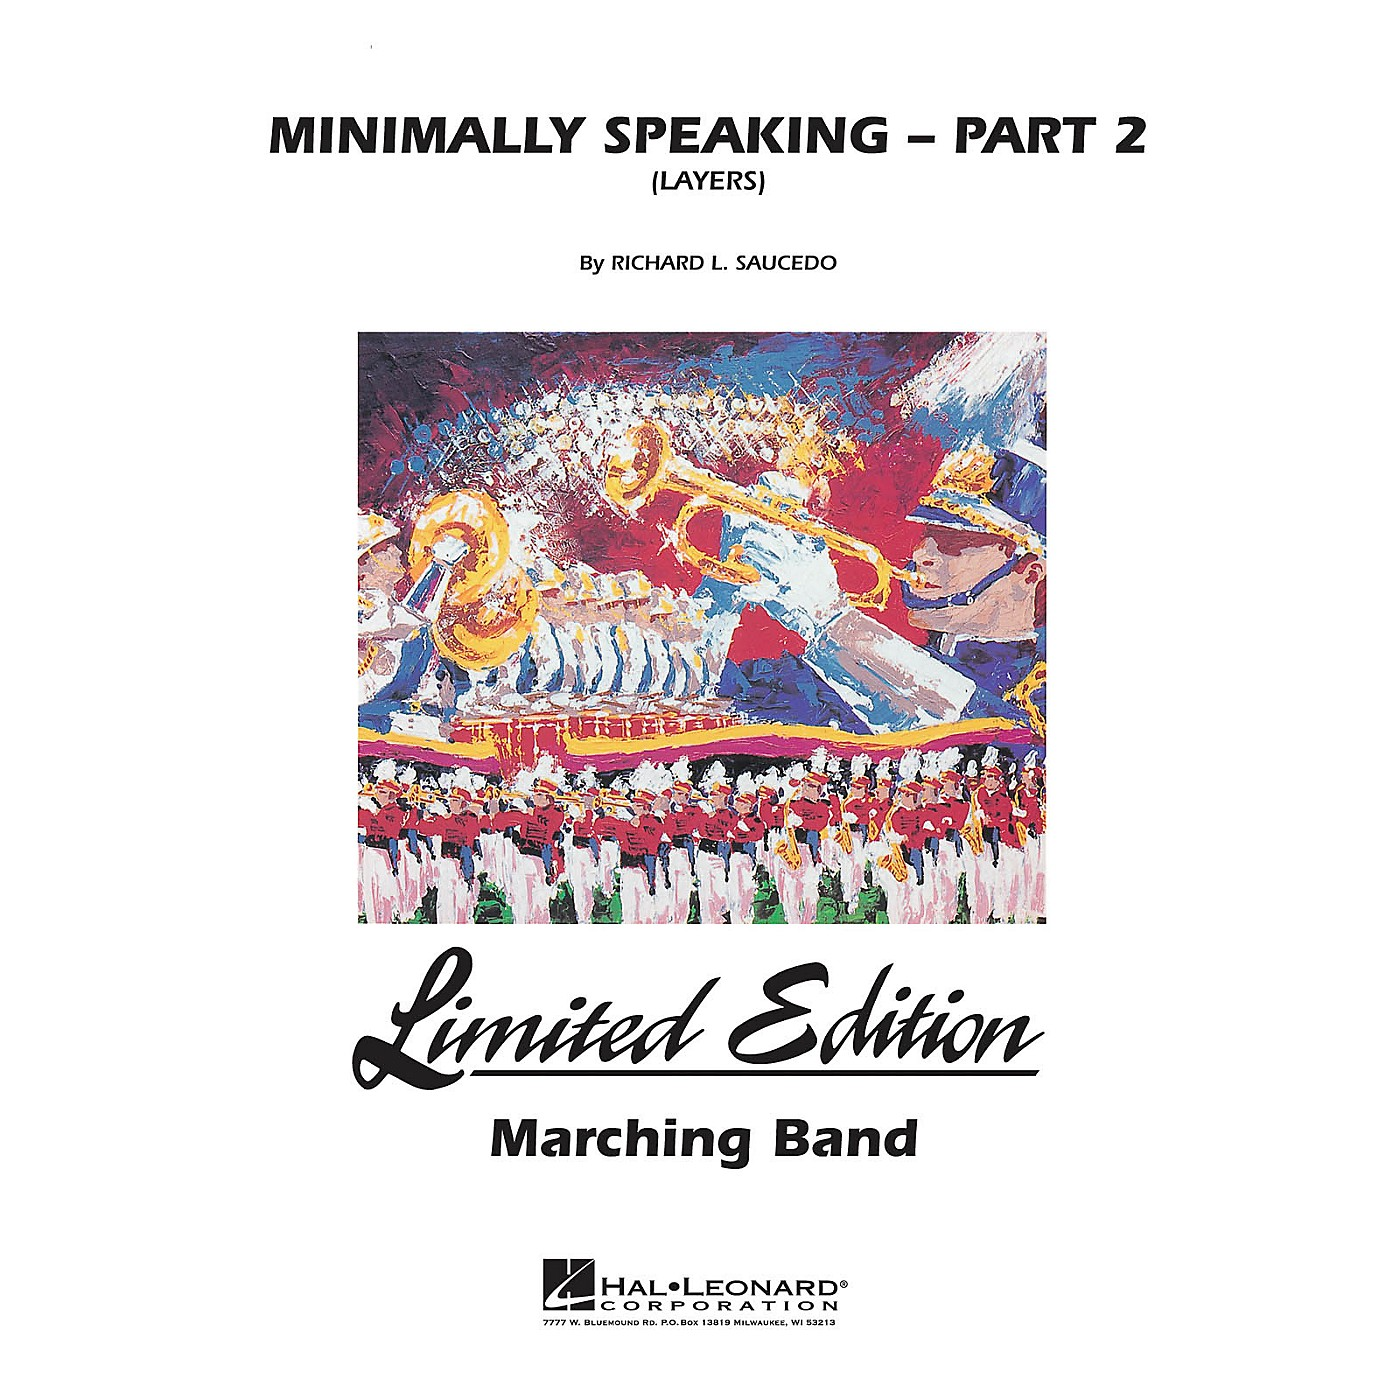 Hal Leonard Minimally Speaking - Part 2 (Layers) Marching Band Level 4-5 Composed by Richard L. Saucedo thumbnail